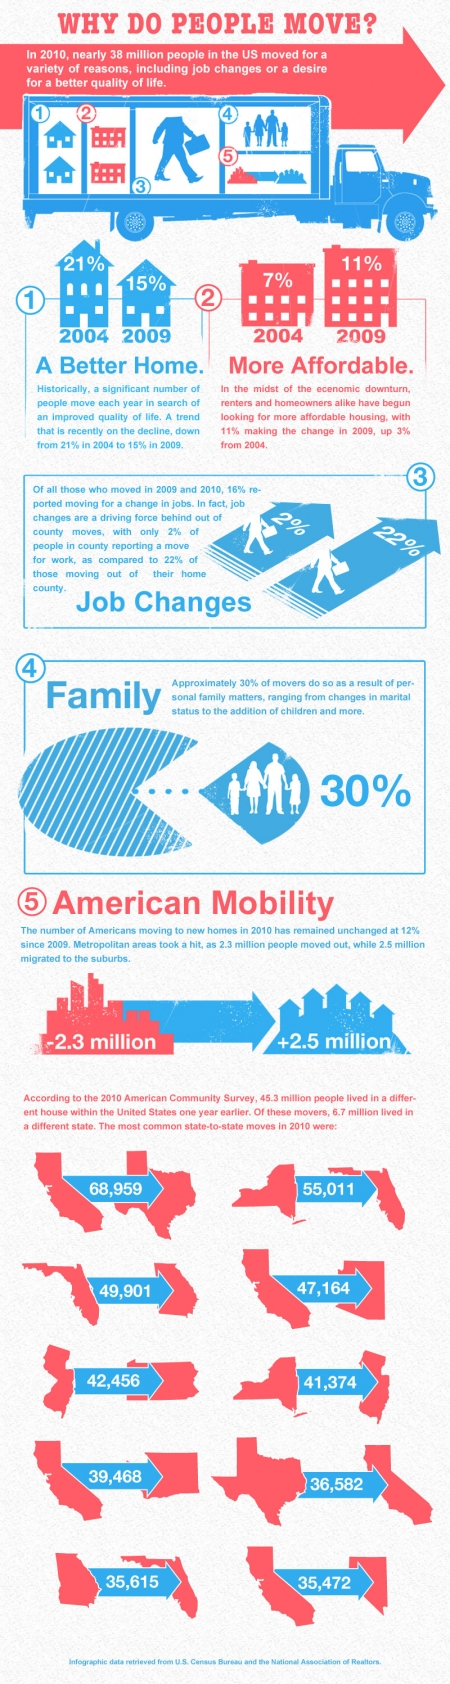 Why do people move? [infographic]